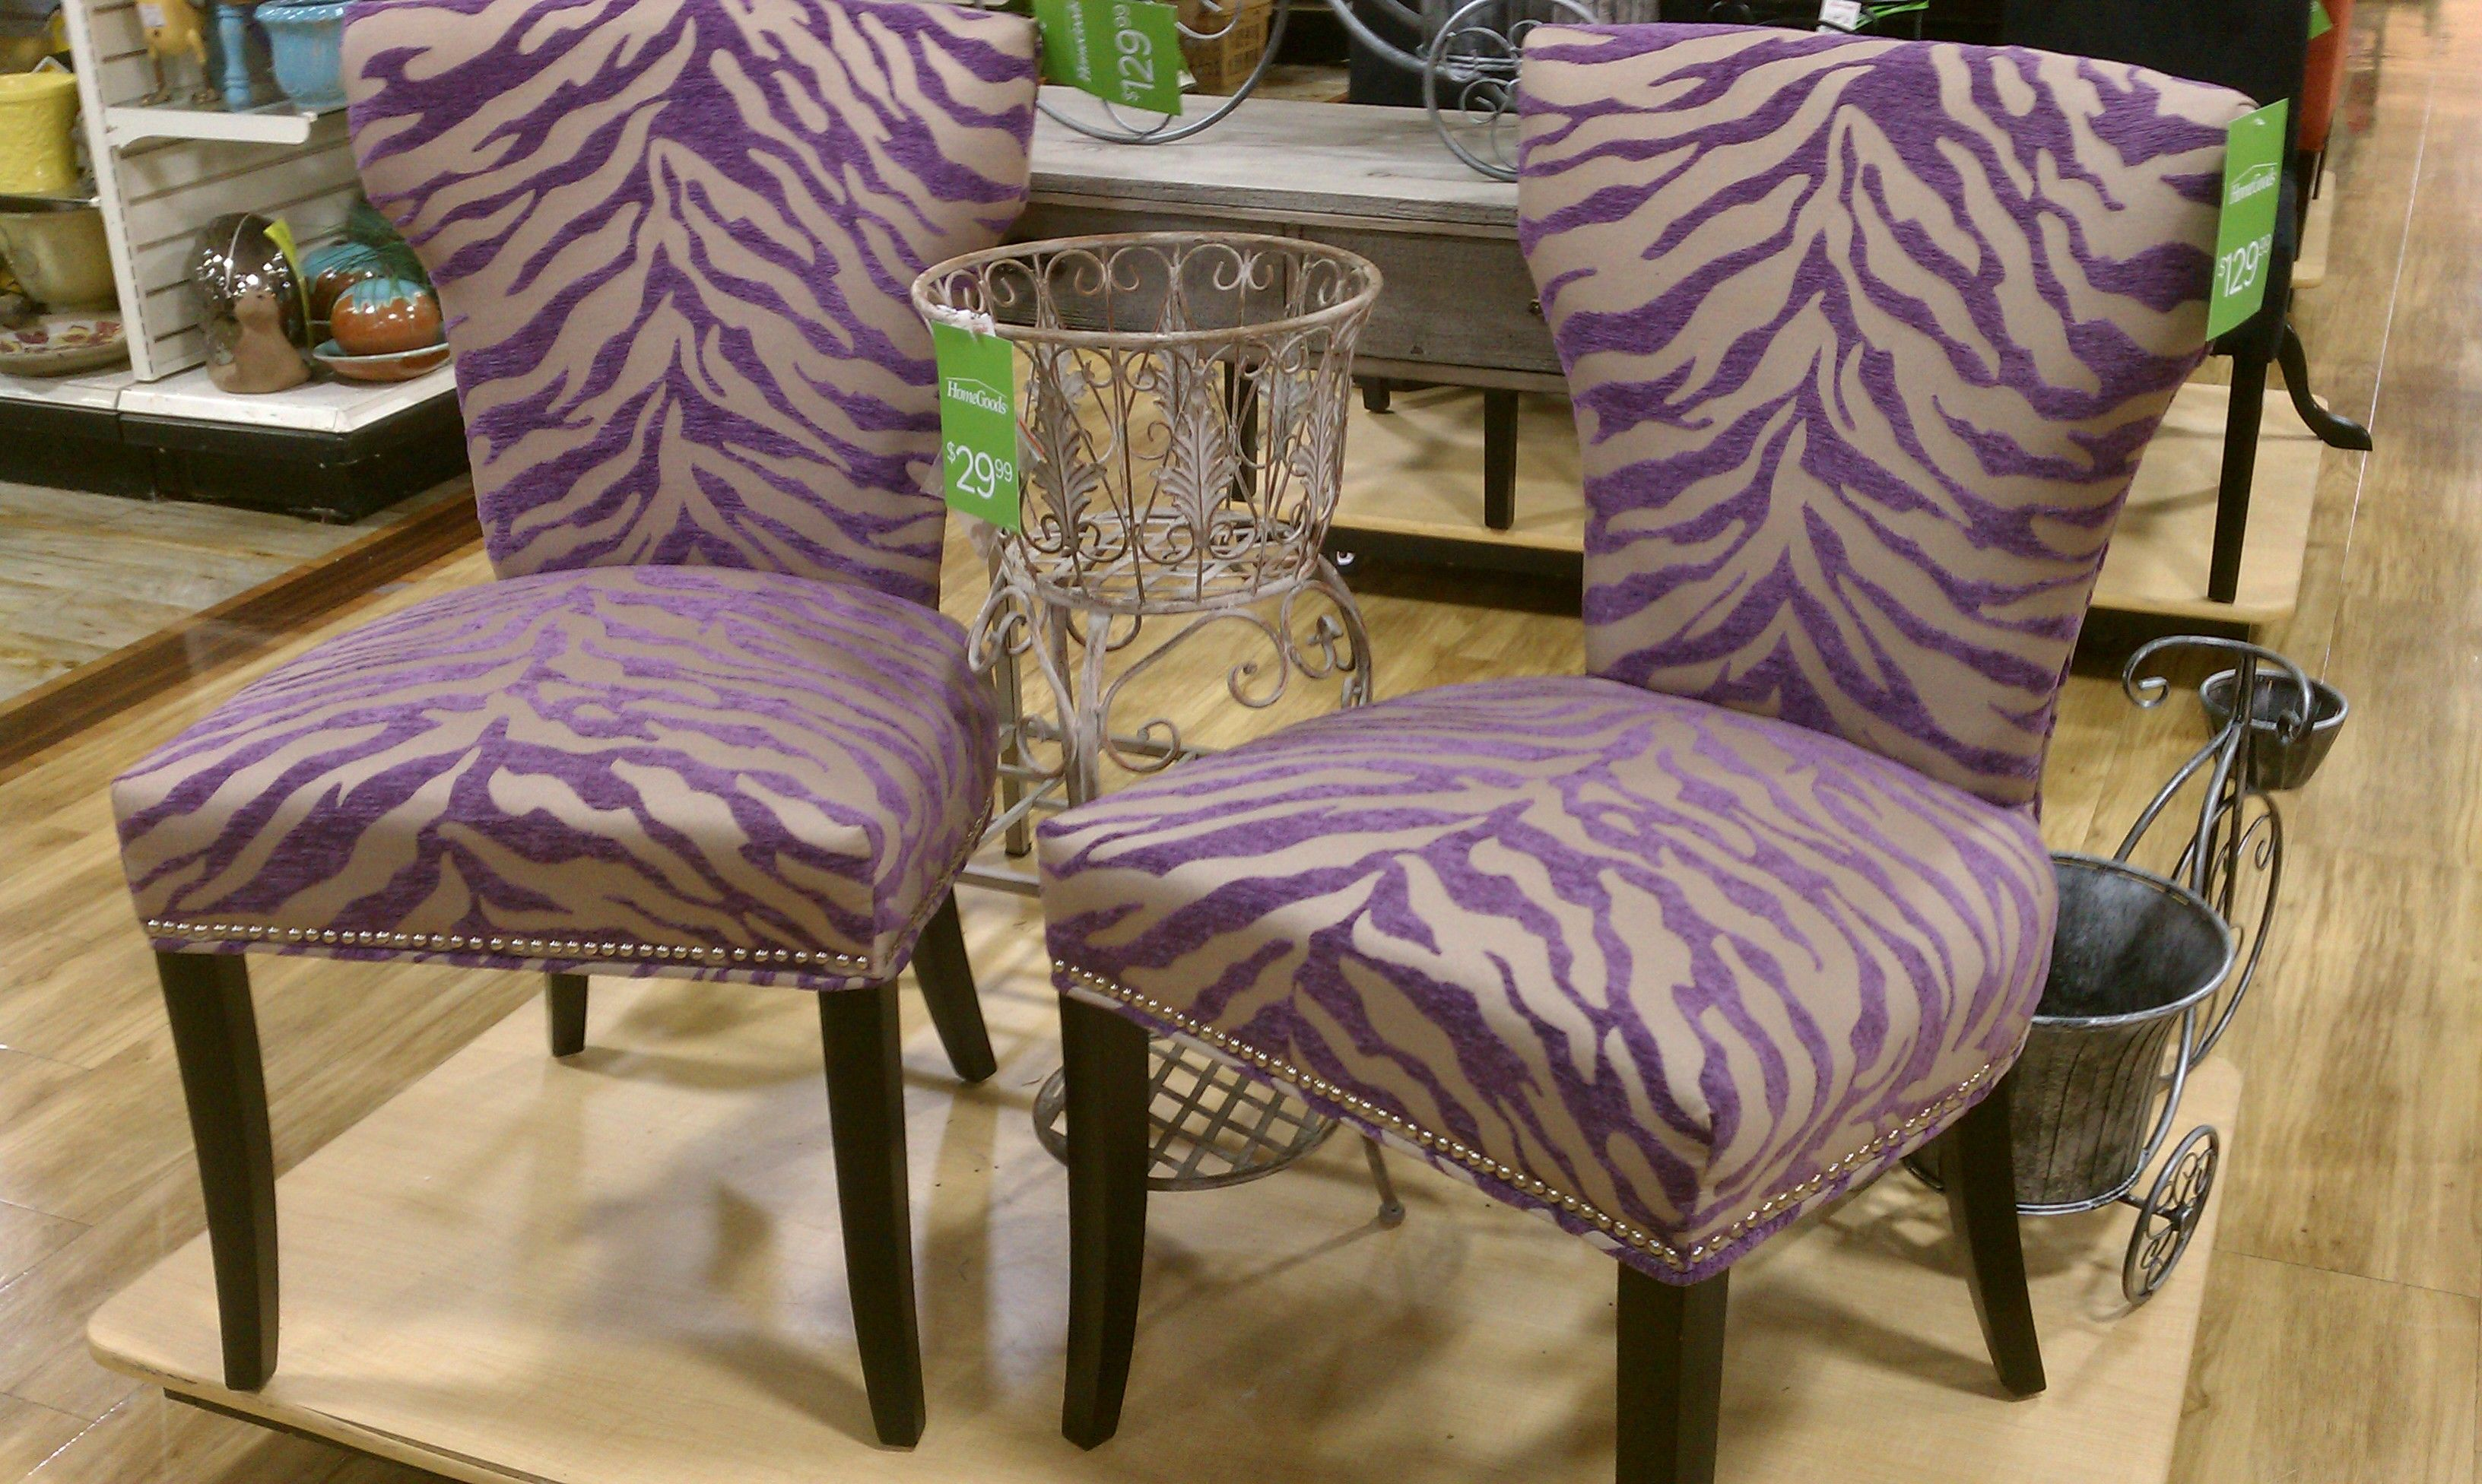 Zebra Dining Chairs Fishing Chair Side Tray Print Home Goods Funky